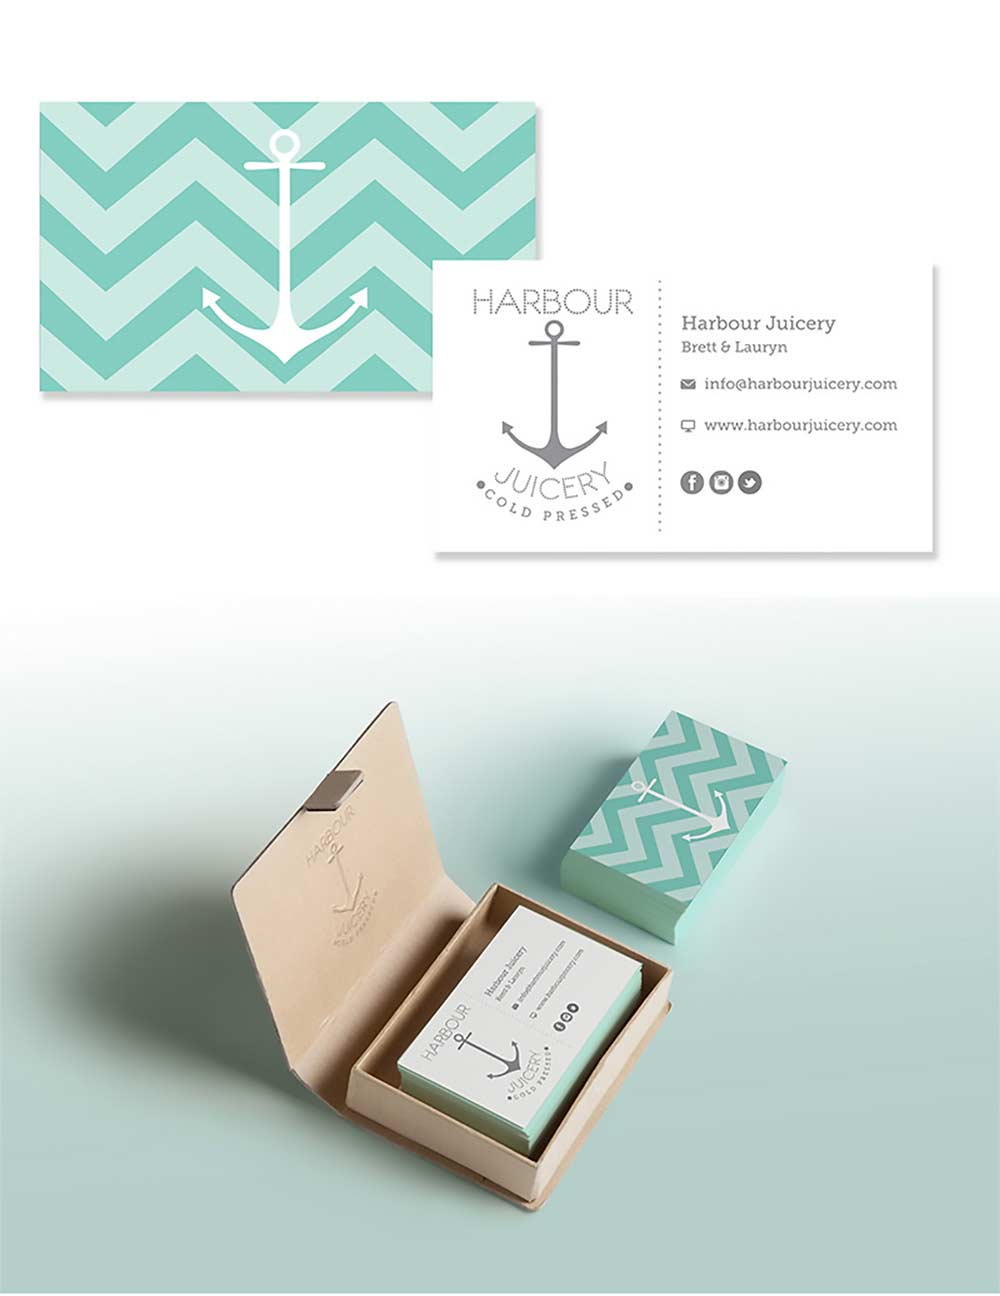 Harbour Juicery Branding, Logos, and Business Cards.